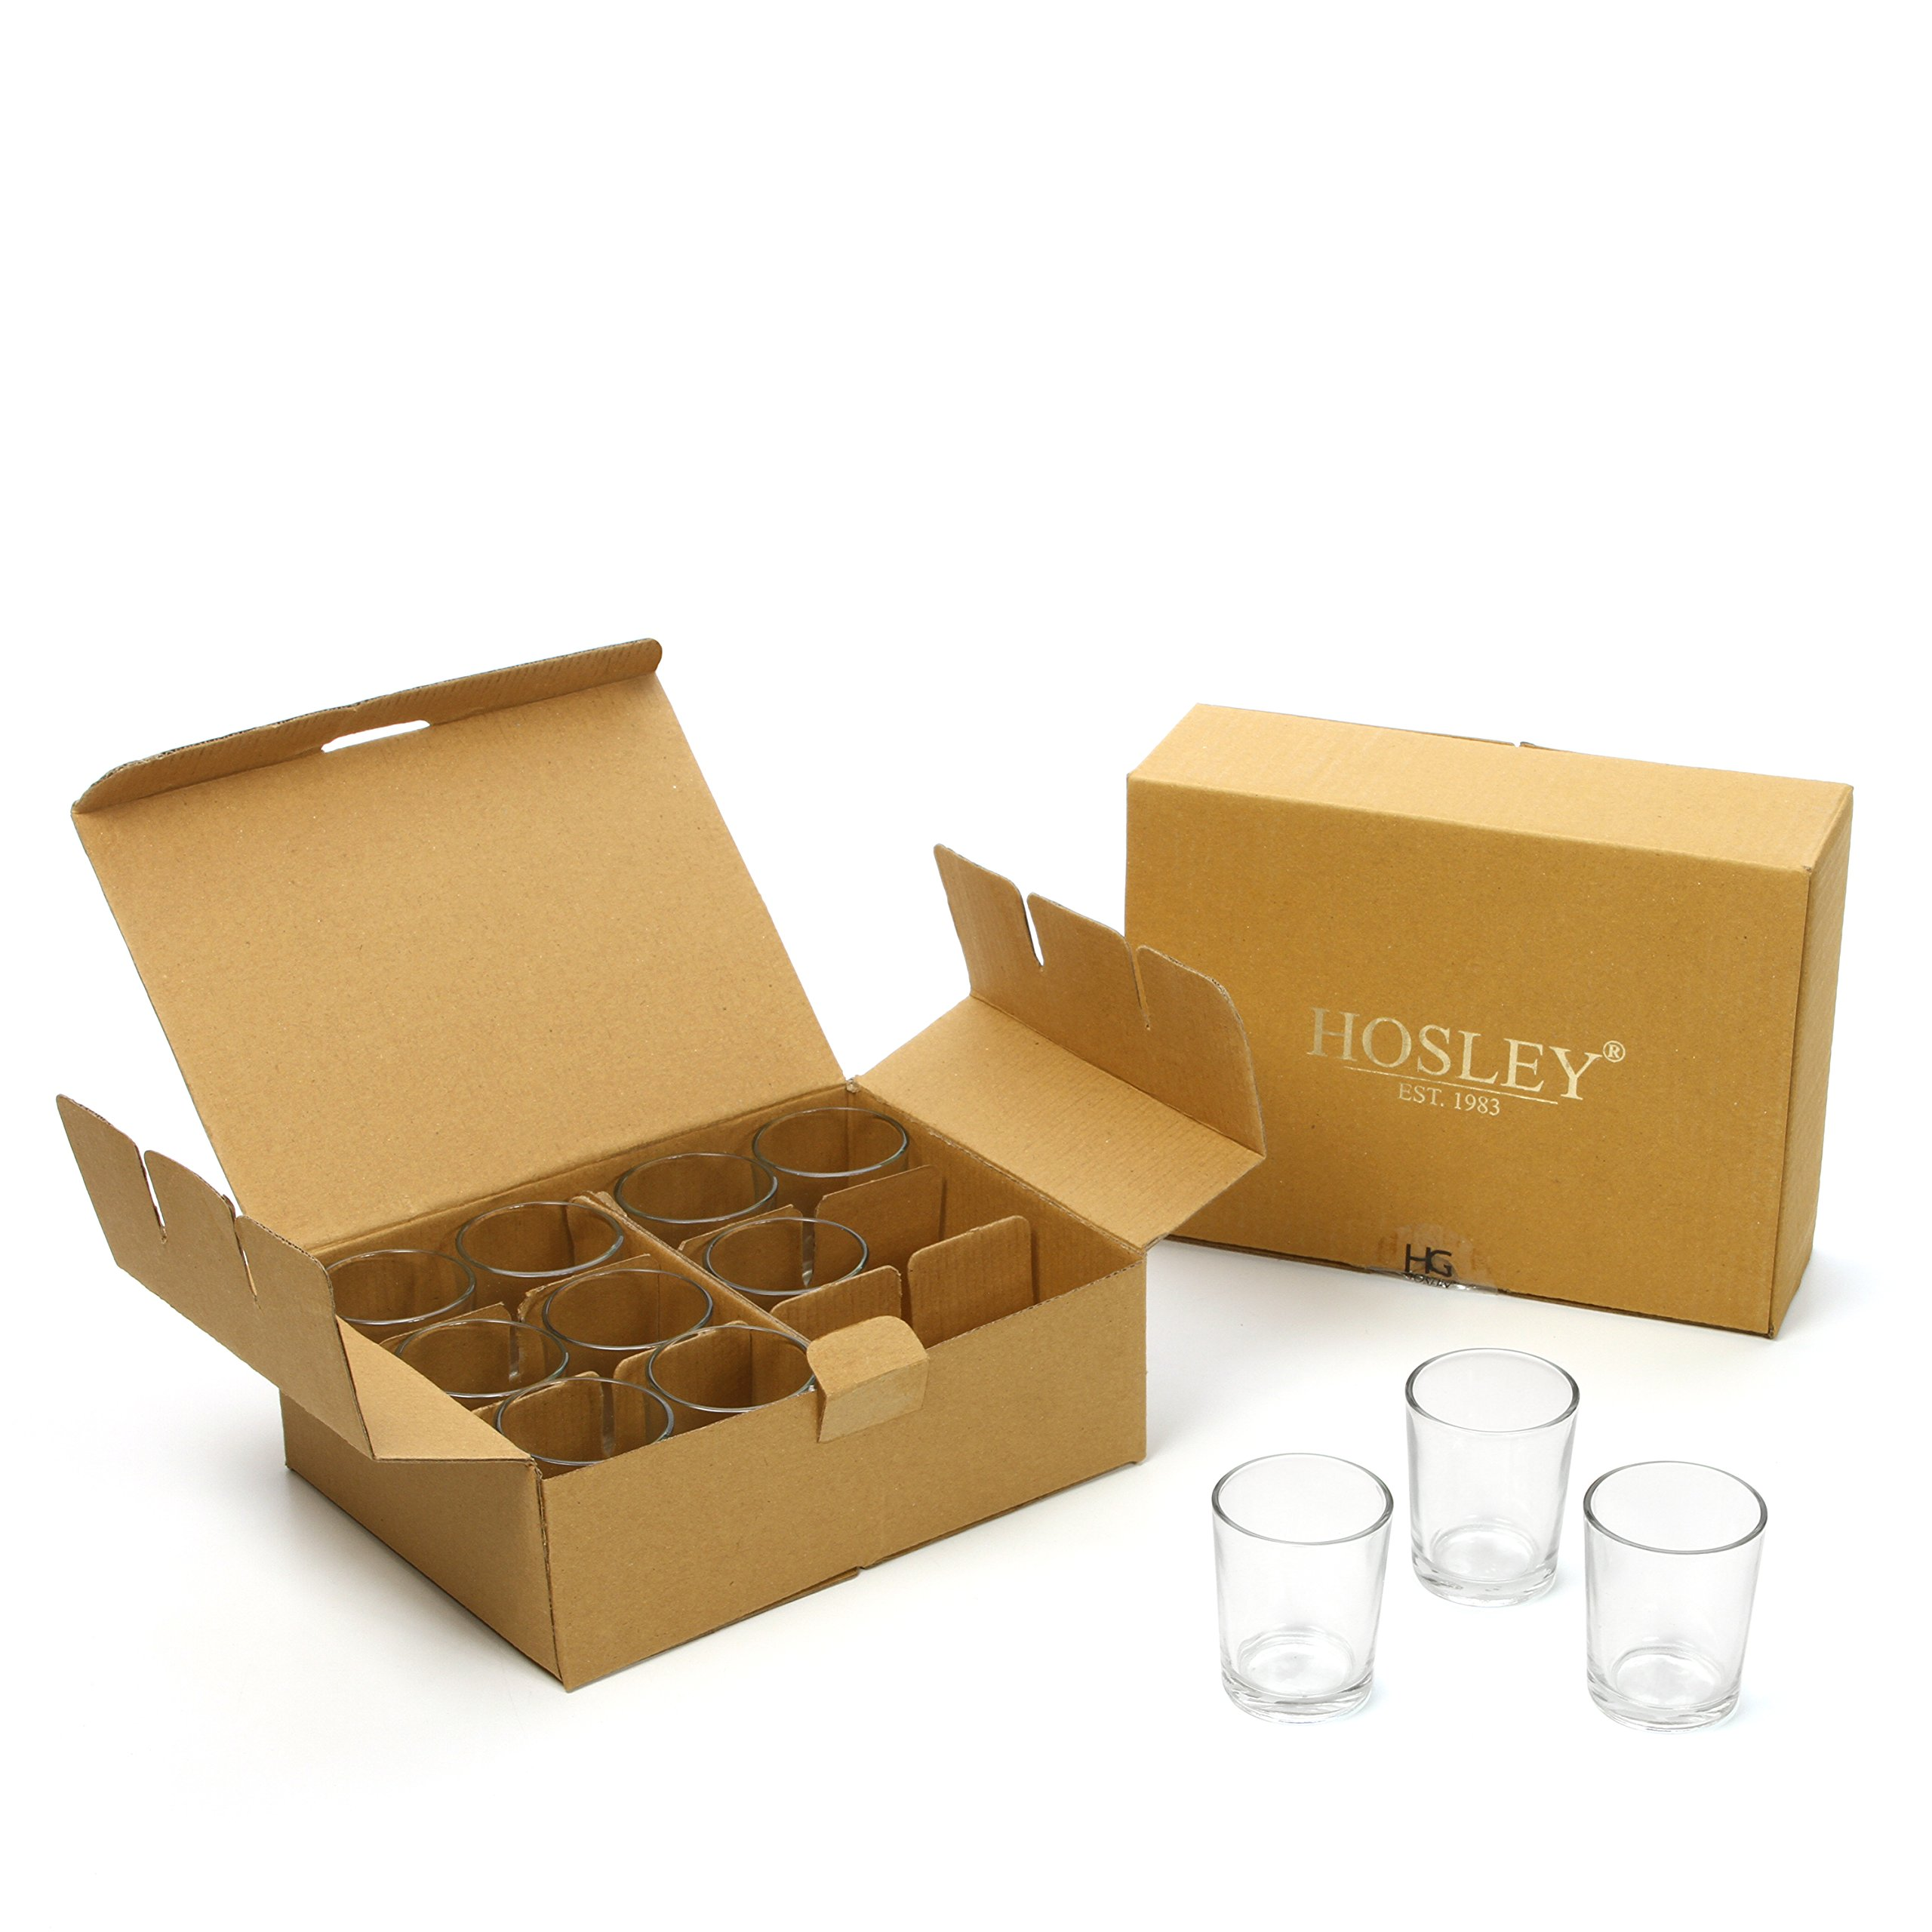 Hosley Set of 72 Clear Votive/Tea Light Glass Candle Holders. Bulk Buy. Ideal for Parties, Wedding, Special Events, Aromatherapy and Everyday Use. Tealights O2